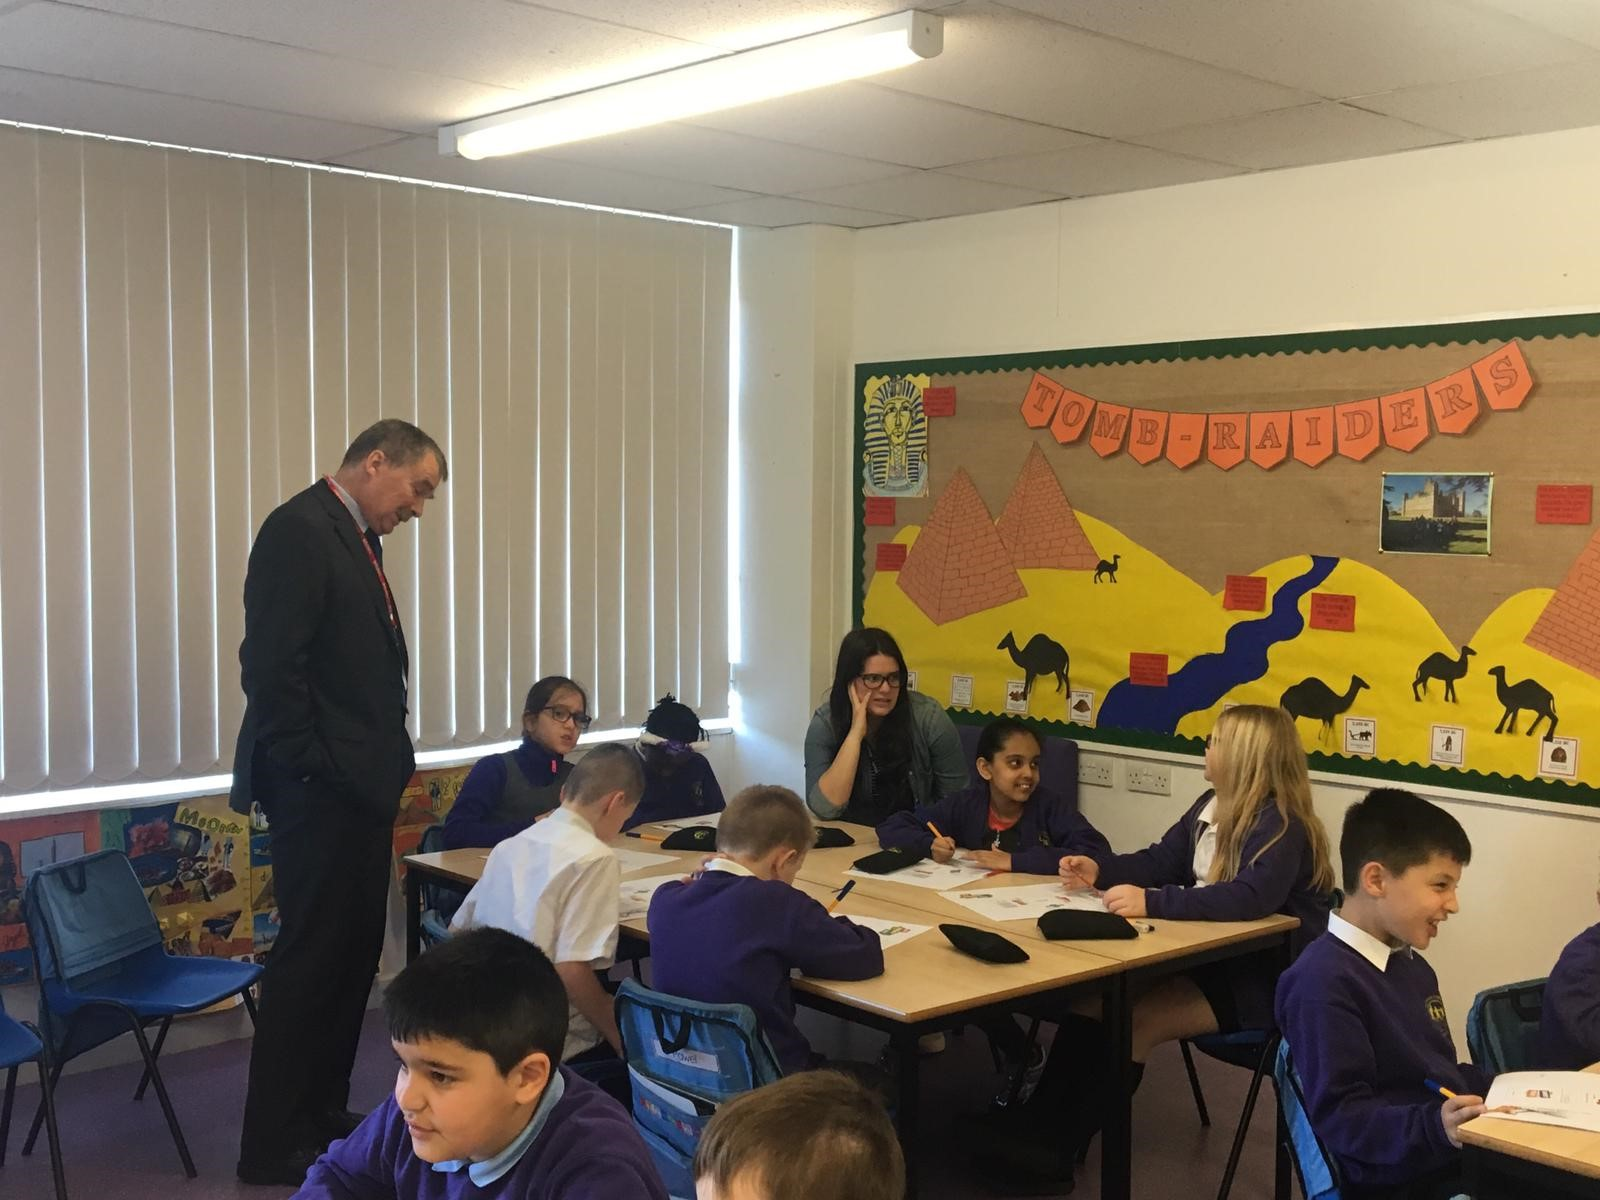 """- Dr Alan Whitehead MP for Southampton Test said:""""KickStart Money is a great programme working to combat the rapid decline in the UK's saving culture by promoting financial literacy at the crucial age when attitudes towards money are formed. It was fantastic to see the KickStart Money programme in action today and the impact that it is having at Bevois Primary School in my own constituency of Southampton Test.""""One of the students added her voice to the mix too: 'You should save money because if you spend all your money on sweets then you have no money left for when you really need it'."""